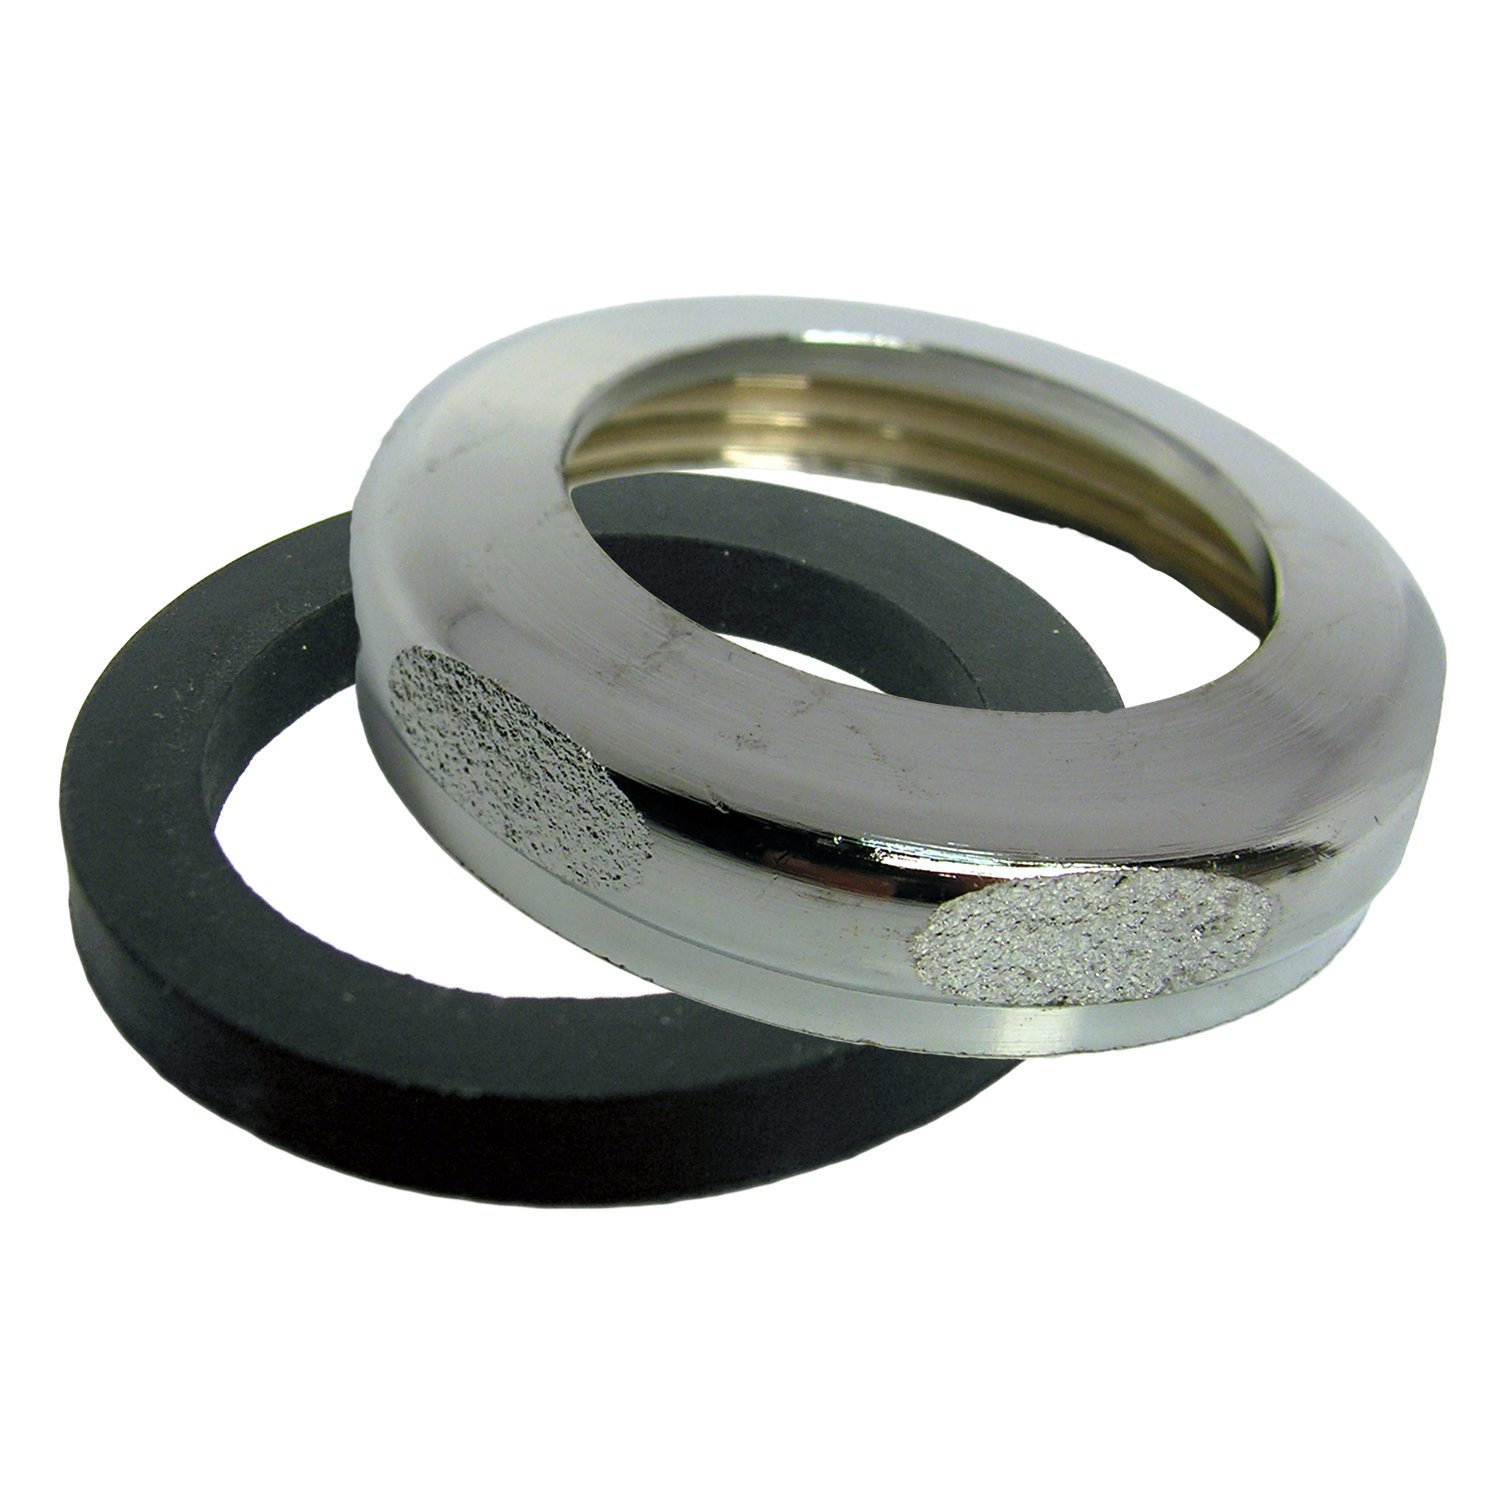 LASCO 03-1865 Reducing Slip Joint Nut with Washer, 1 1/2-Inch x 1 1/4-Inch, Chrome Plated Brass